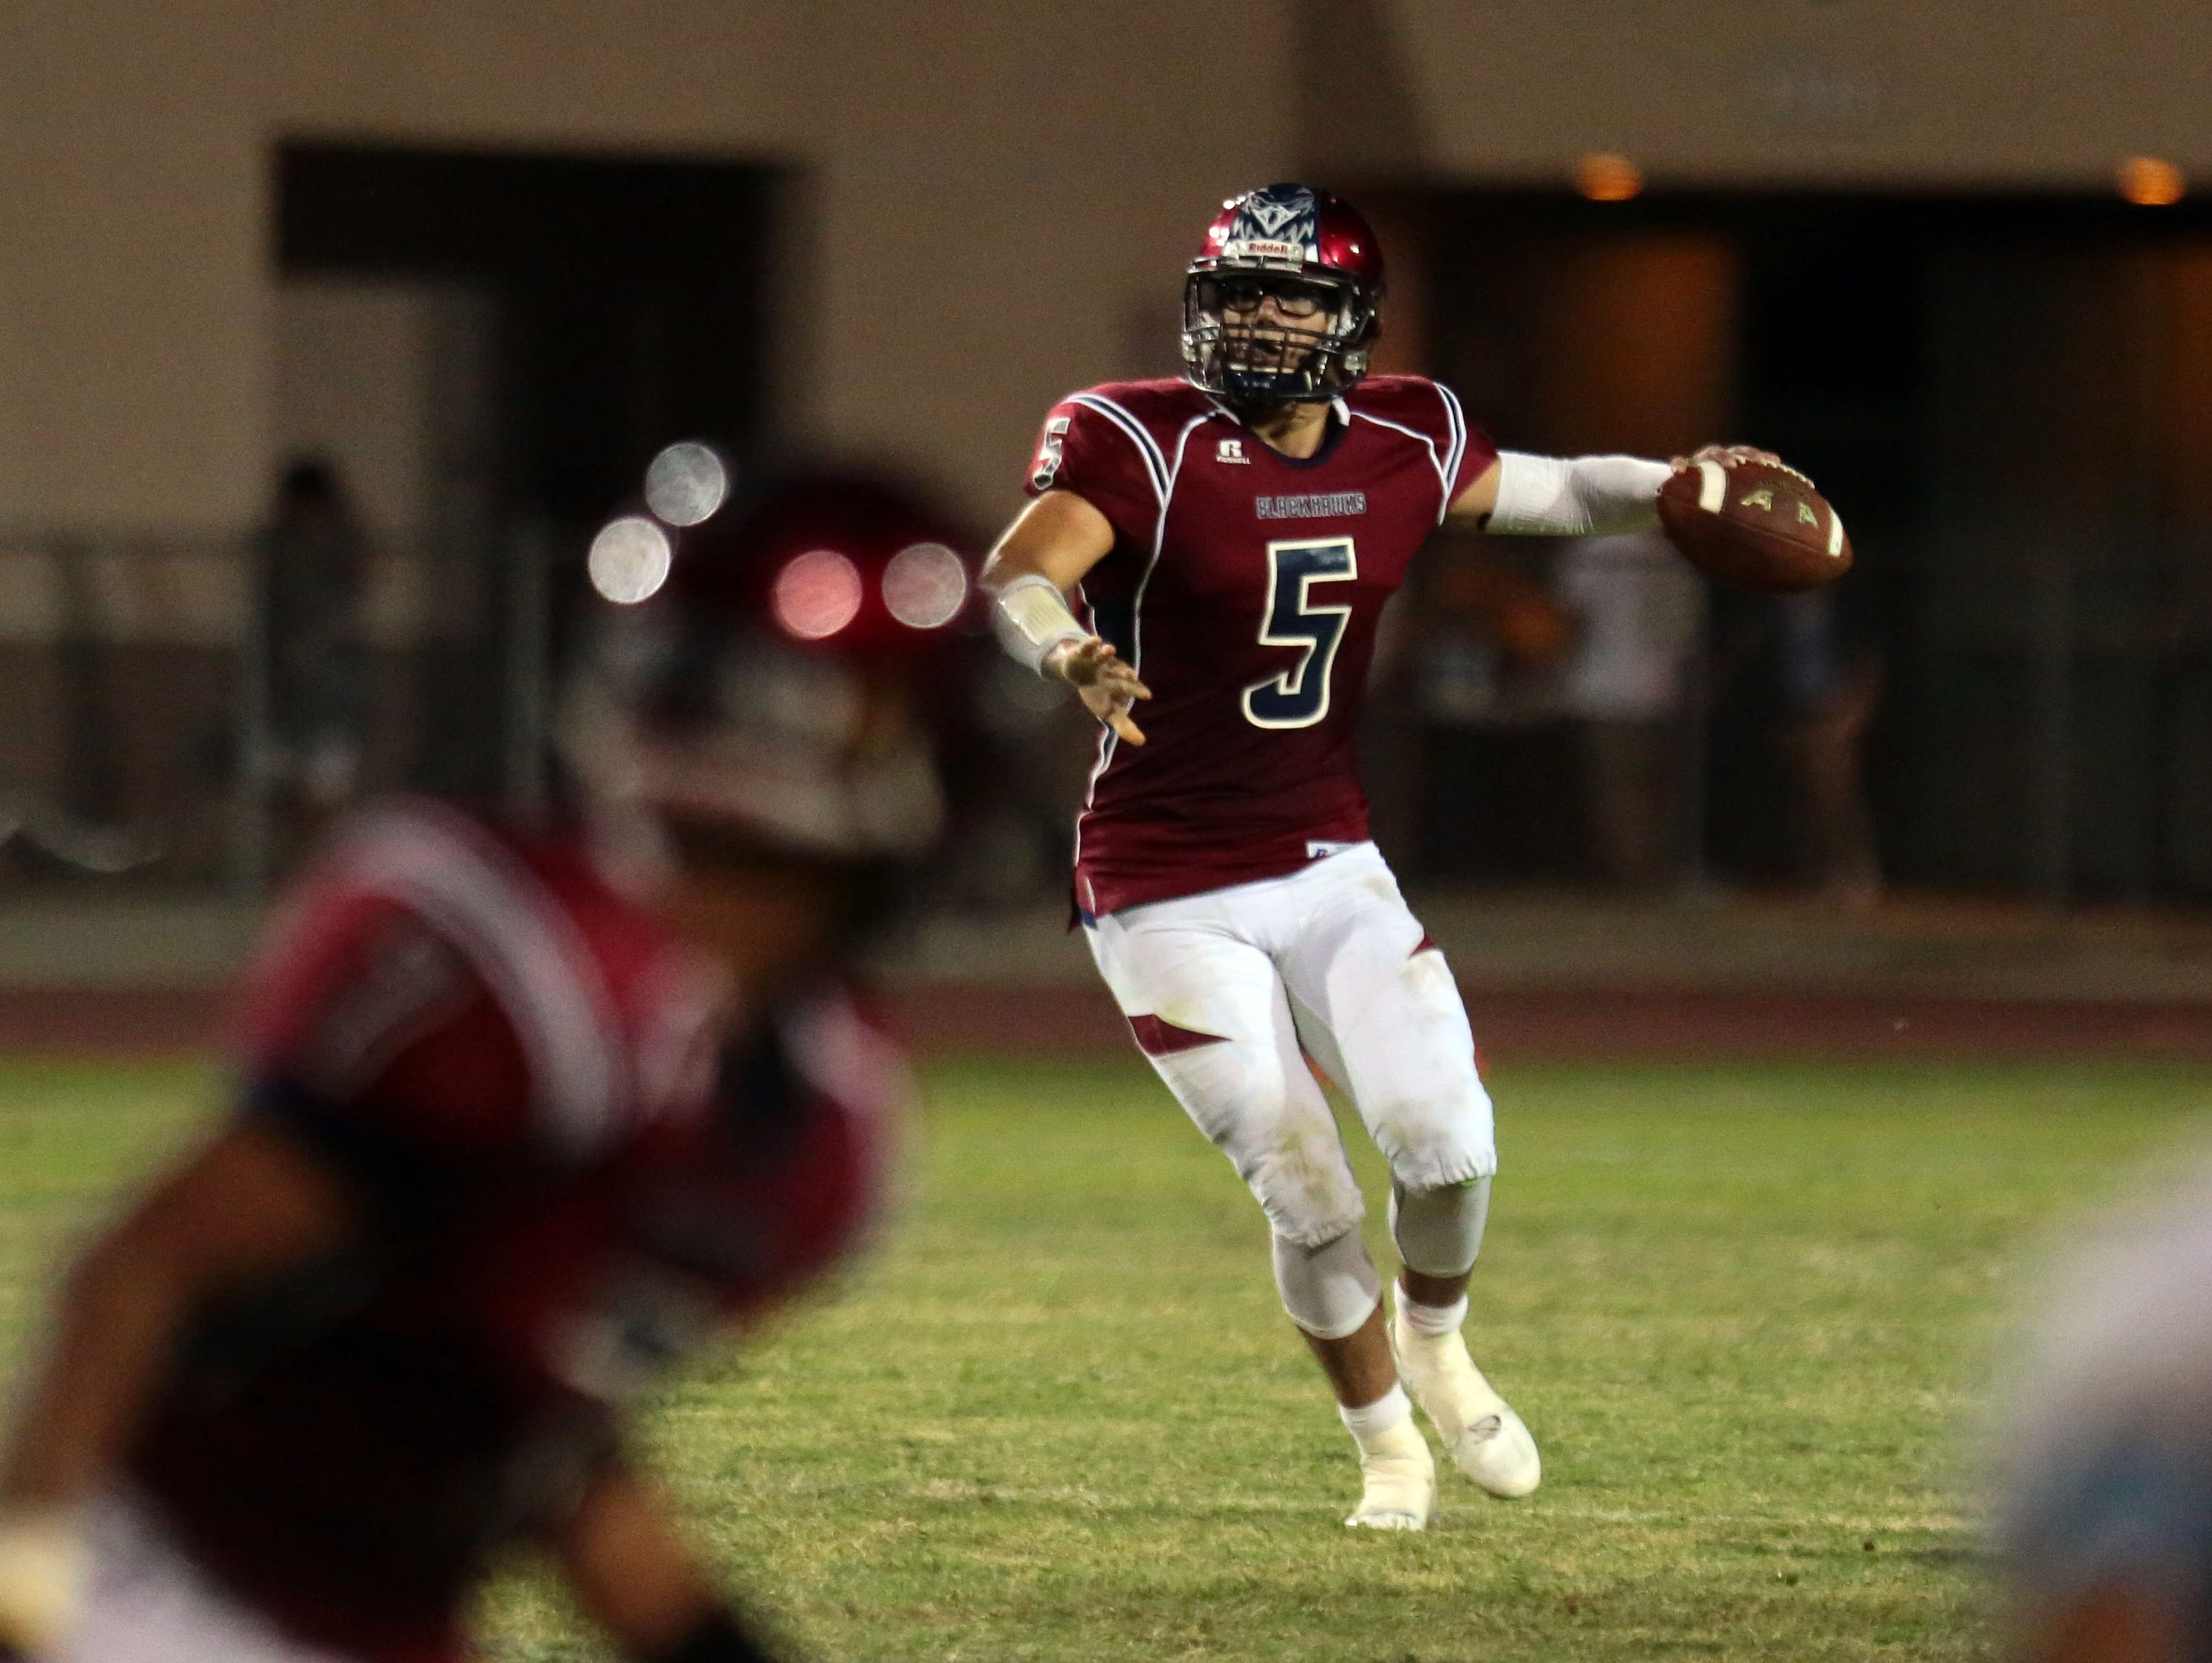 La Quinta quarterback Andrew Garcia hands the ball off to Justin Anderson during play against Rancho Mirage on Friday, September 9, 2016 in La Quinta.